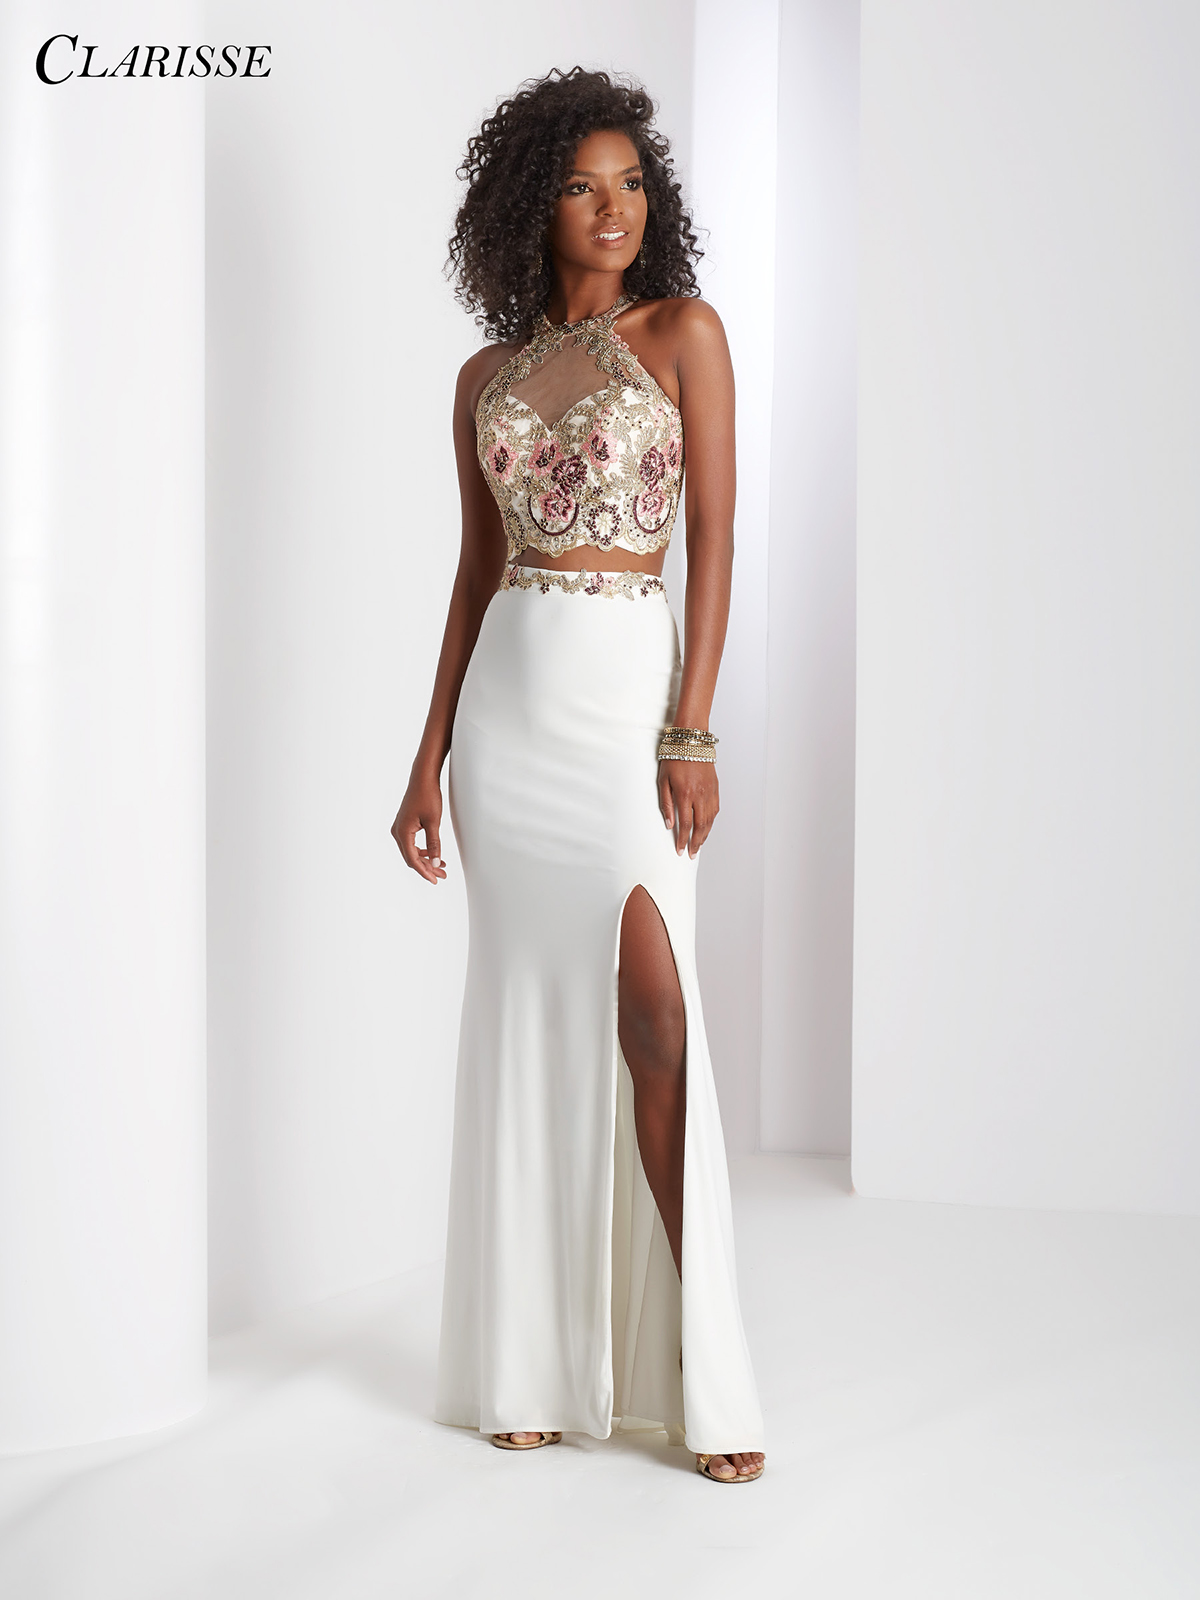 2018 Prom Dress Clarisse 3536 | Promgirl.net